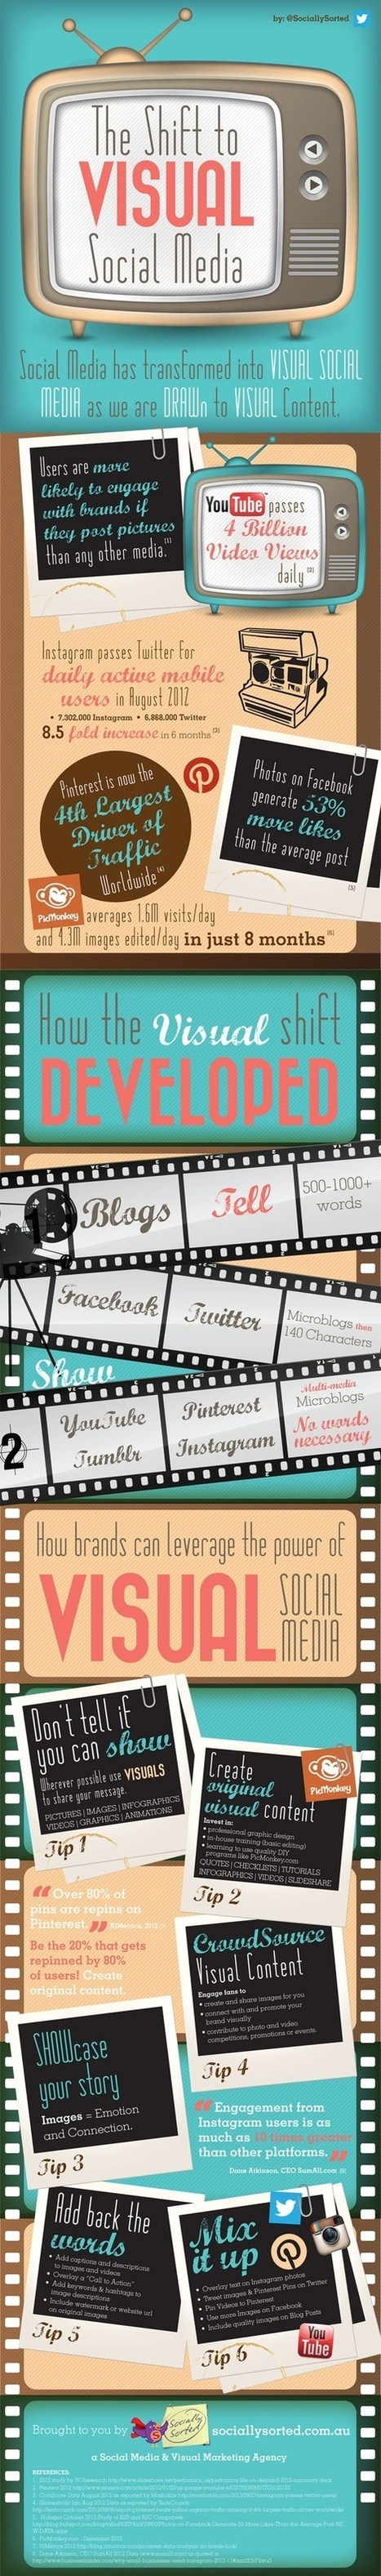 Pictures Rock - The Shift To VISUAL Social Media Marketing [Infographic] | Marketing Revolution | Scoop.it